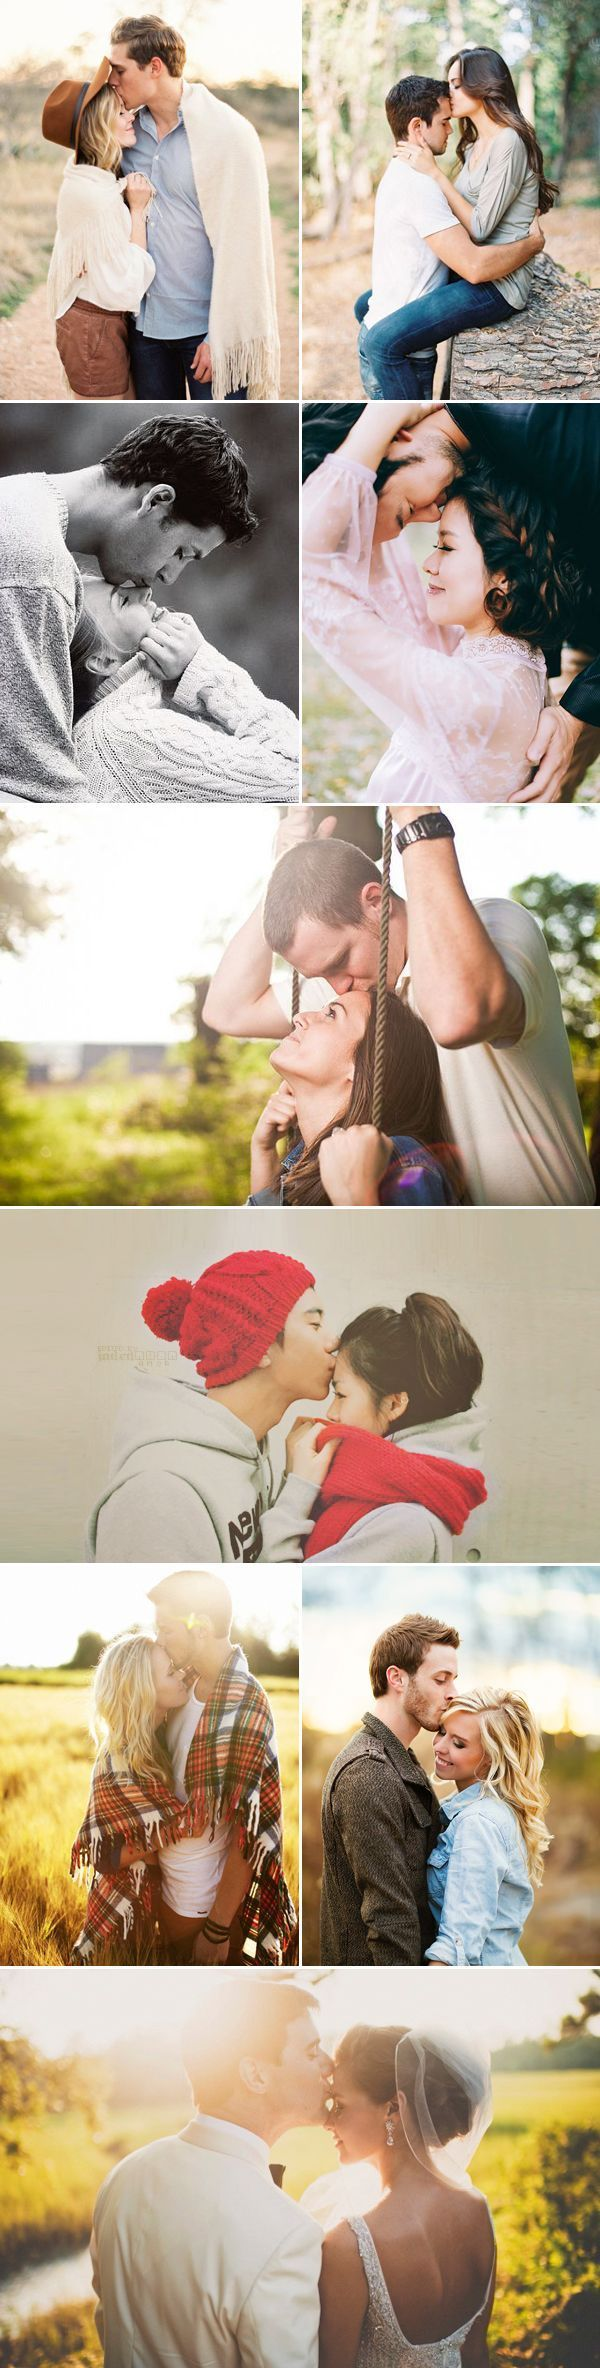 37 Must Try Cute Couple Photo Poses - The Forehead Kiss! #PhotographyIdeas